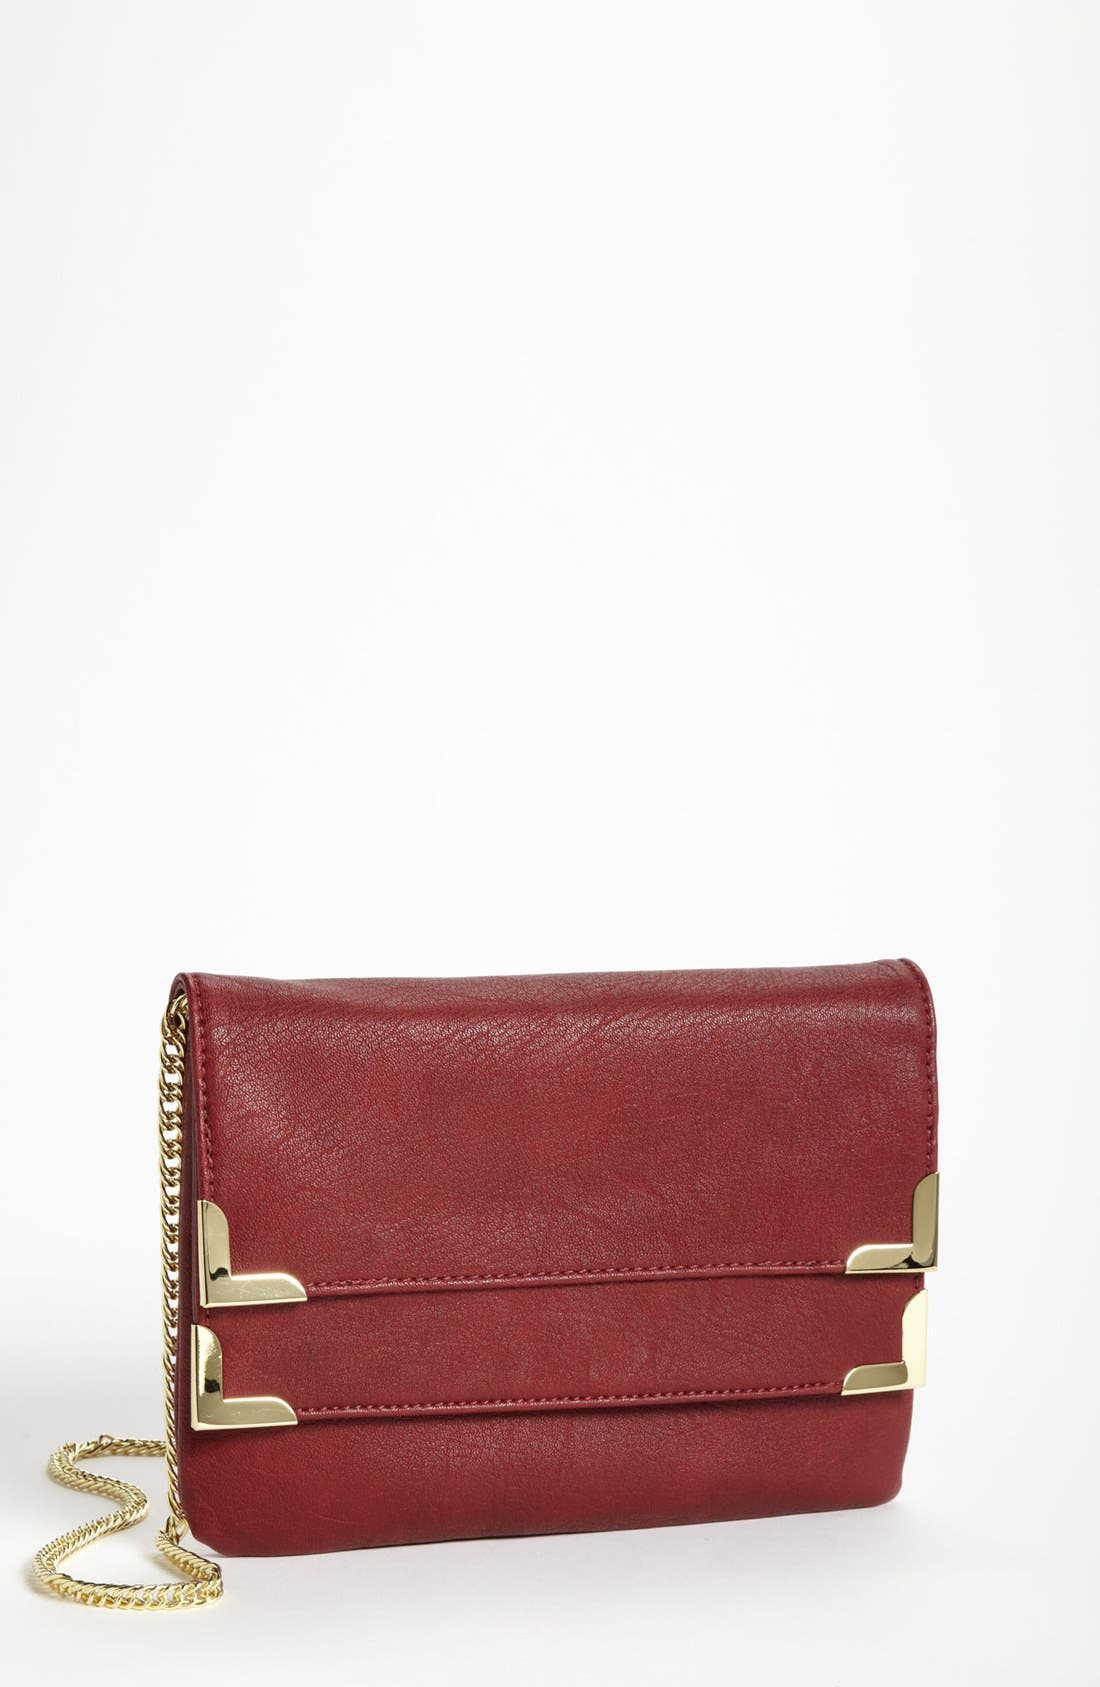 Alternate Image 1 Selected - Danielle Nicole Faux Leather Clutch